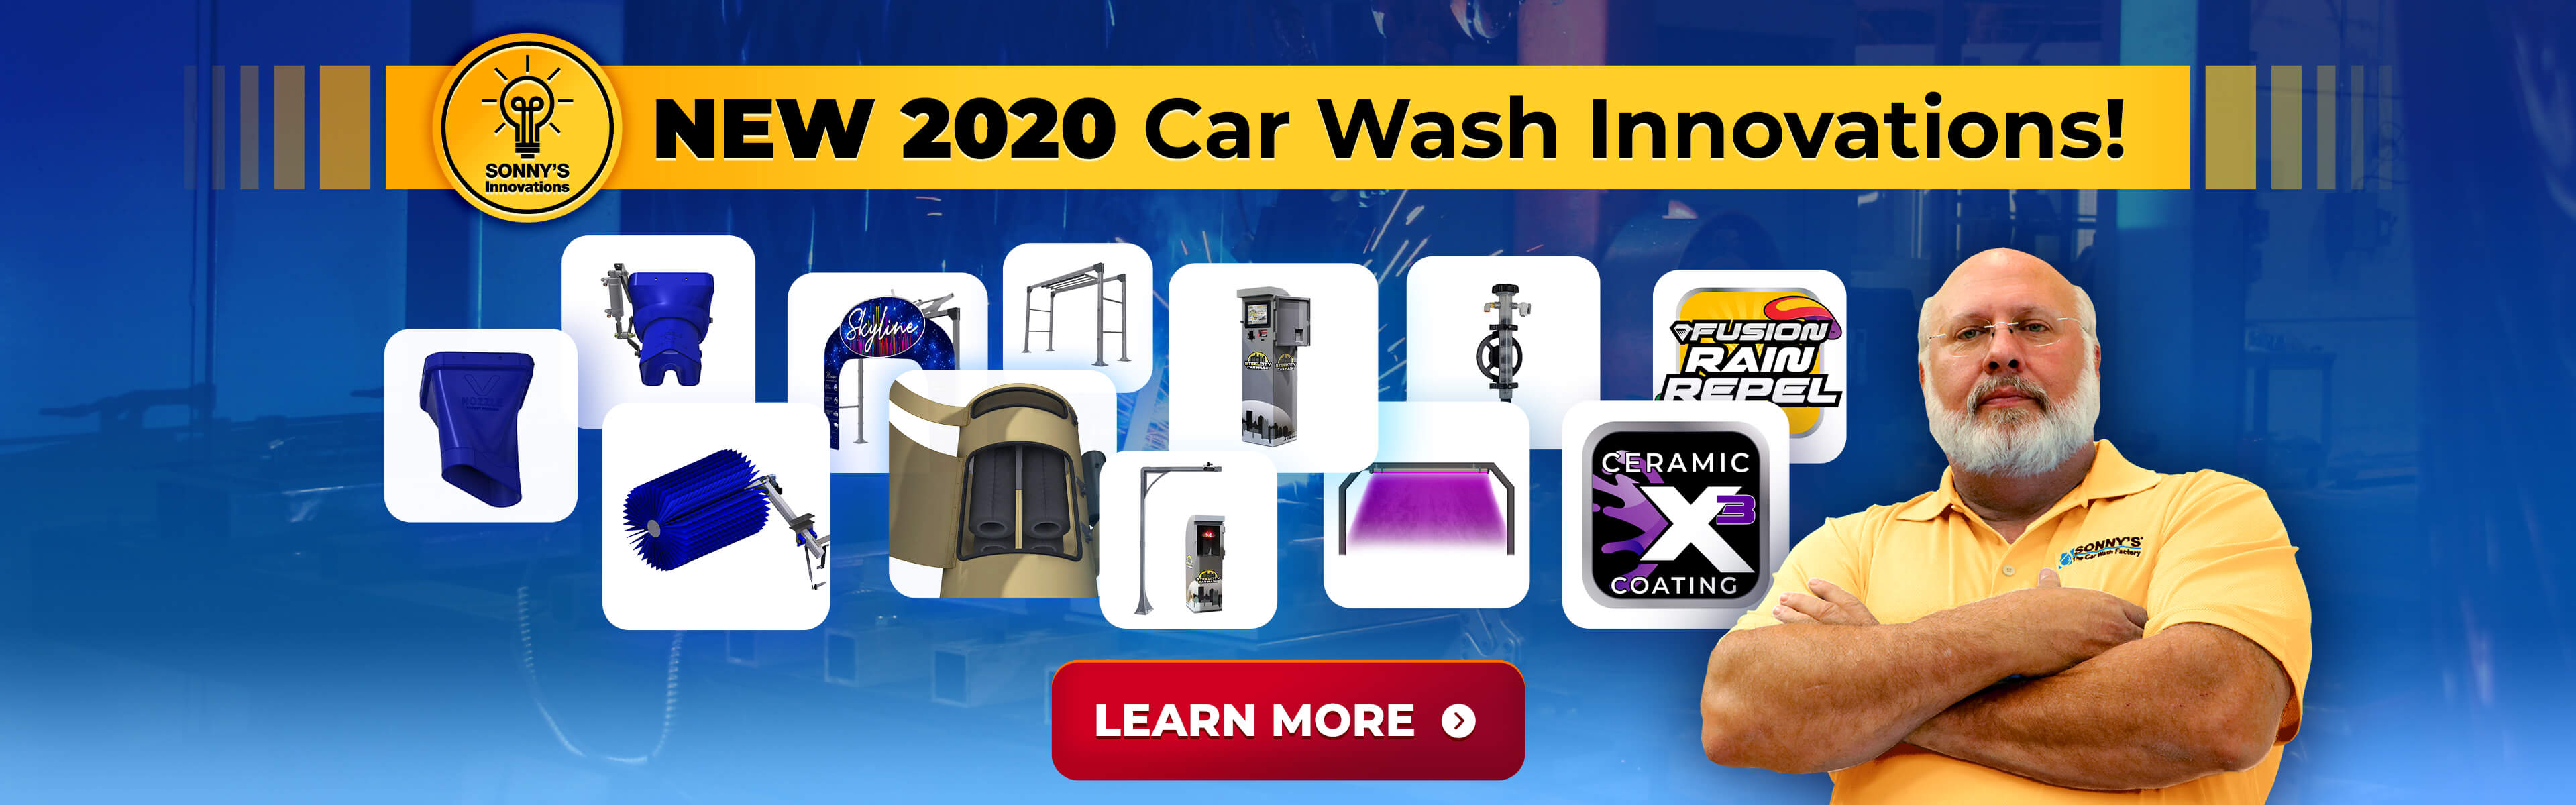 NEW 2020 Sonny's Car Wash Innovations